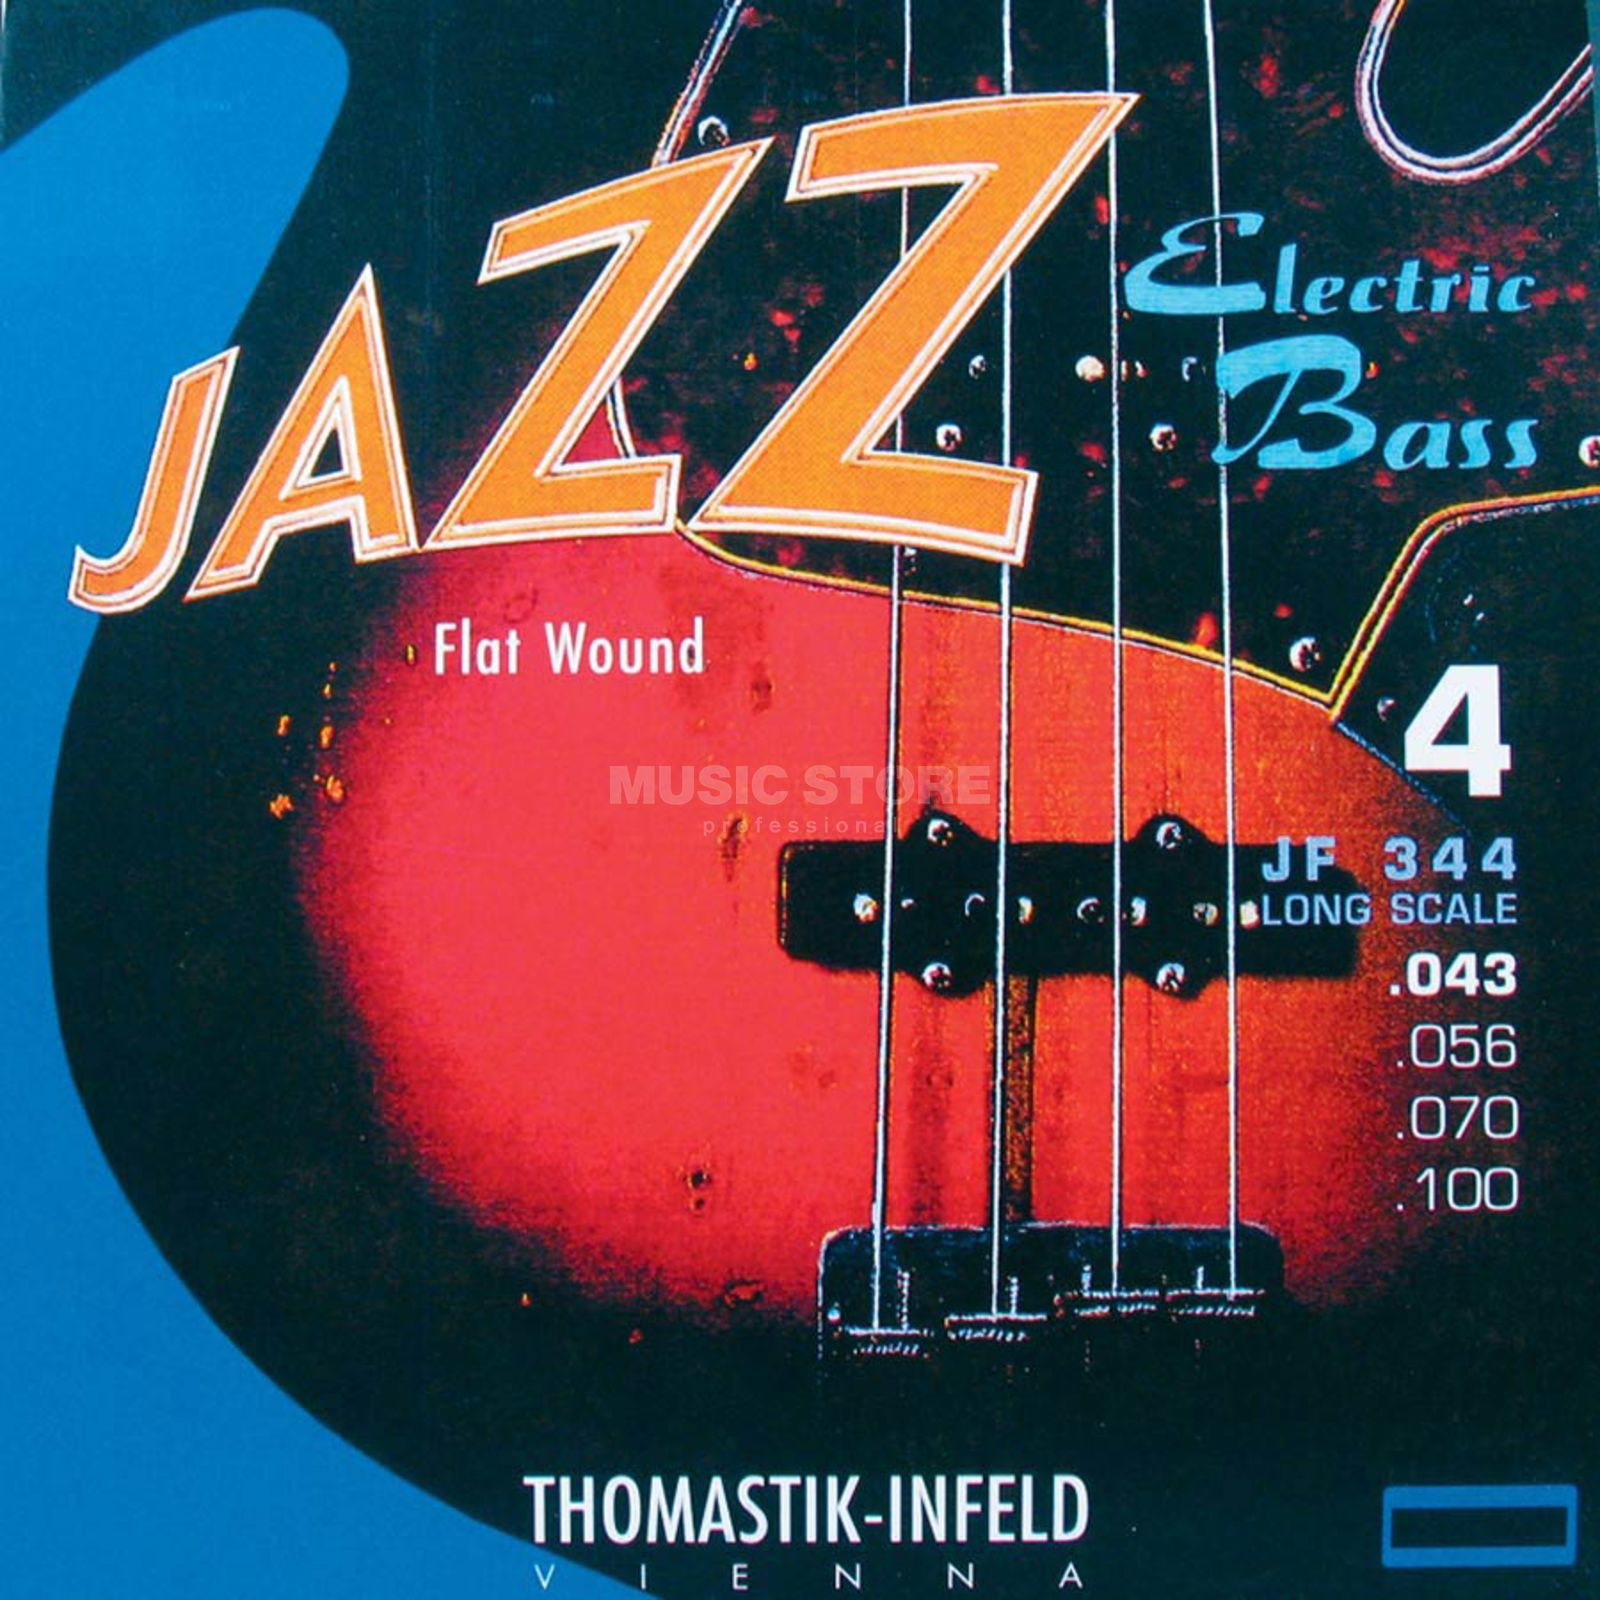 Thomastik 4er Bass JF 344 43-100 Nickel Flat Wound Produktbild